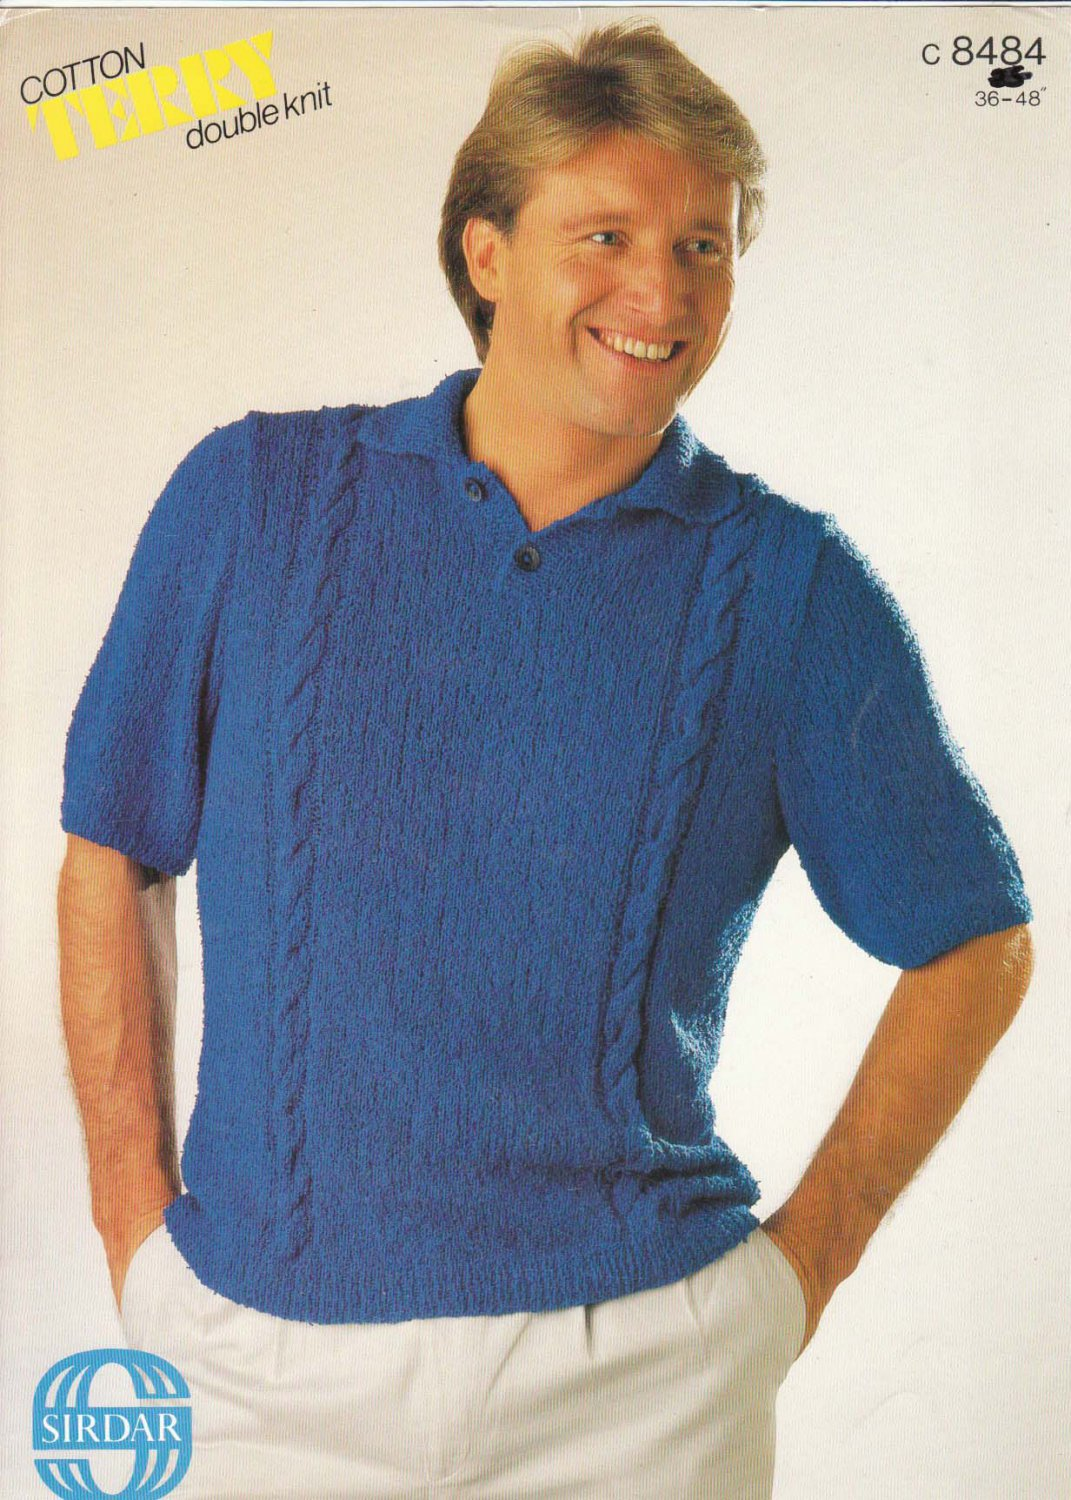 Sirdar Pattern #c8484 to knit Mens Cotton Terry Double Knit Tee Shirt